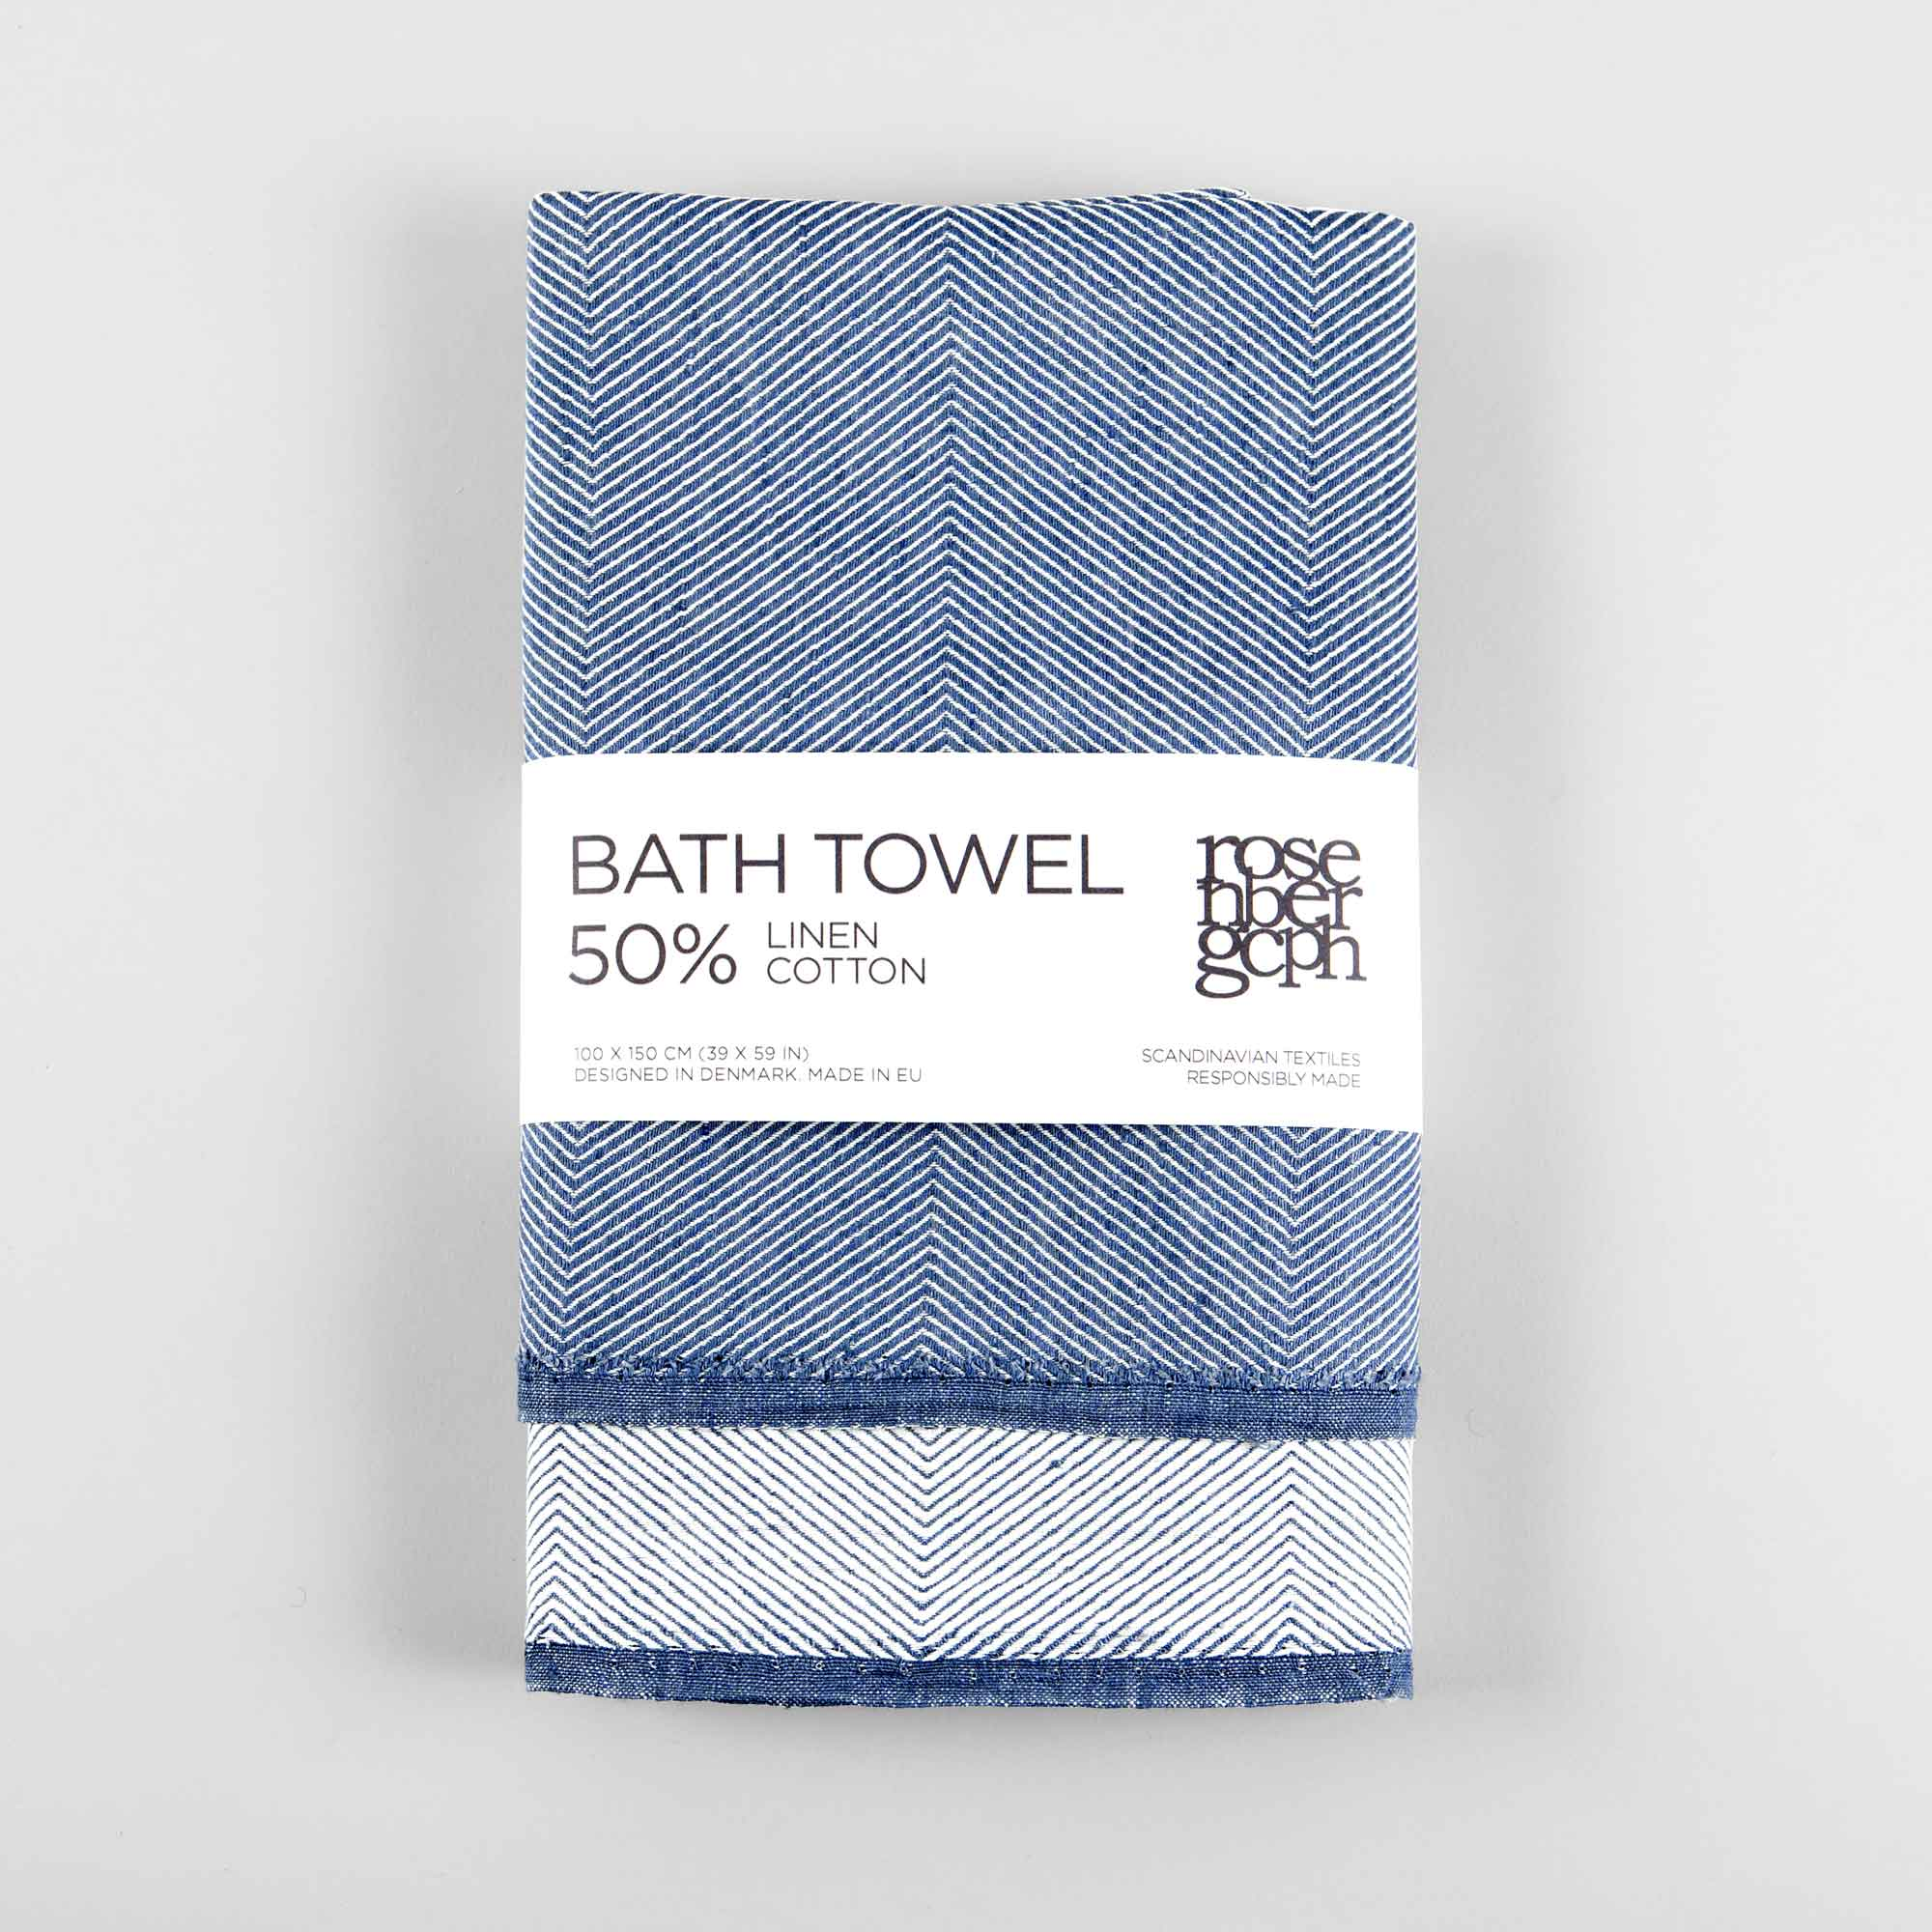 Bath Towel Linen Cotton Rosenbergcph